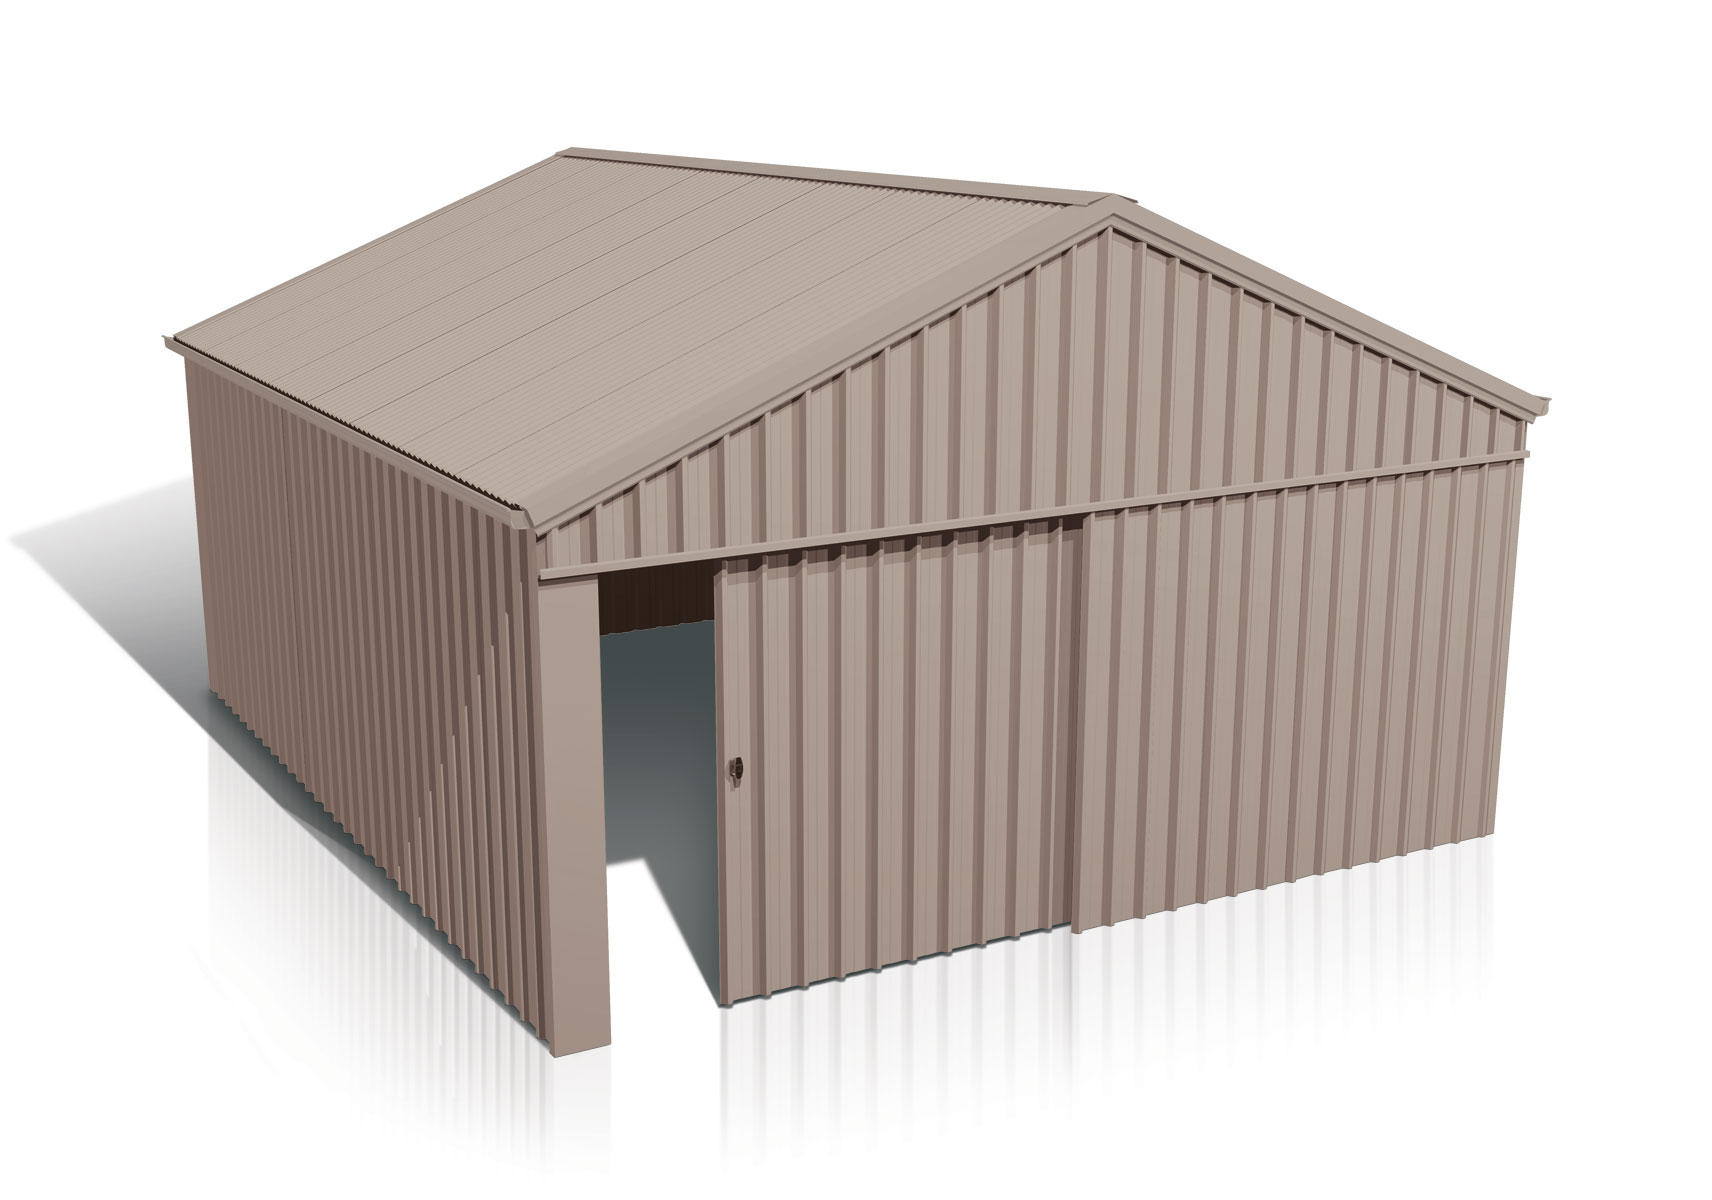 Gable Roof Shed   Stratco on factory roof, loft roof, boat roof, well roof, building roof, bicycle roof, hotel roof, tractor roof, white roof, office roof, cabin roof, warehouse roof, farmhouse roof, dog roof, apartment roof, hospital roof, cottage roof, city roof, tenement roof, adobe roof,